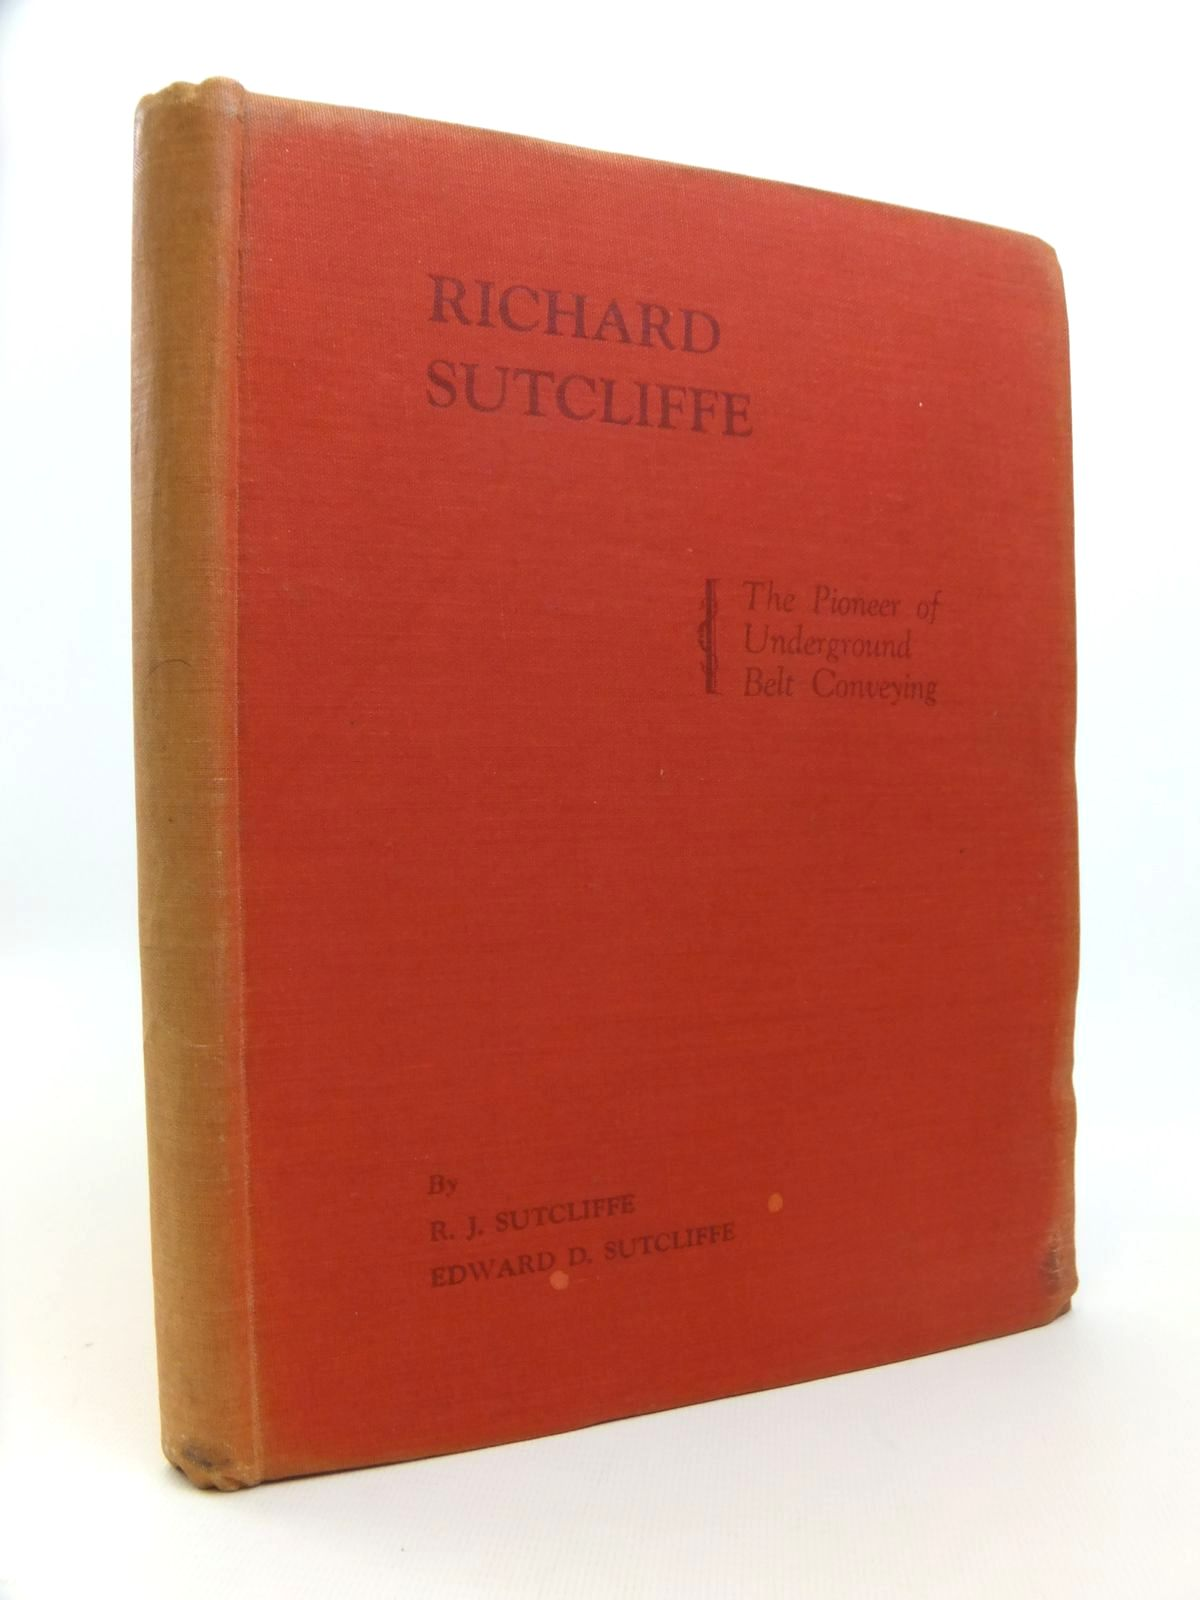 Photo of RICHARD SUTCLIFFE: THE PIONEER OF UNDERGROUND BELT CONVEYING written by Sutcliffe, R.J.<br />Sutcliffe, Edward D. published by R.W. Simpson & Co. Ltd. (STOCK CODE: 1812299)  for sale by Stella & Rose's Books